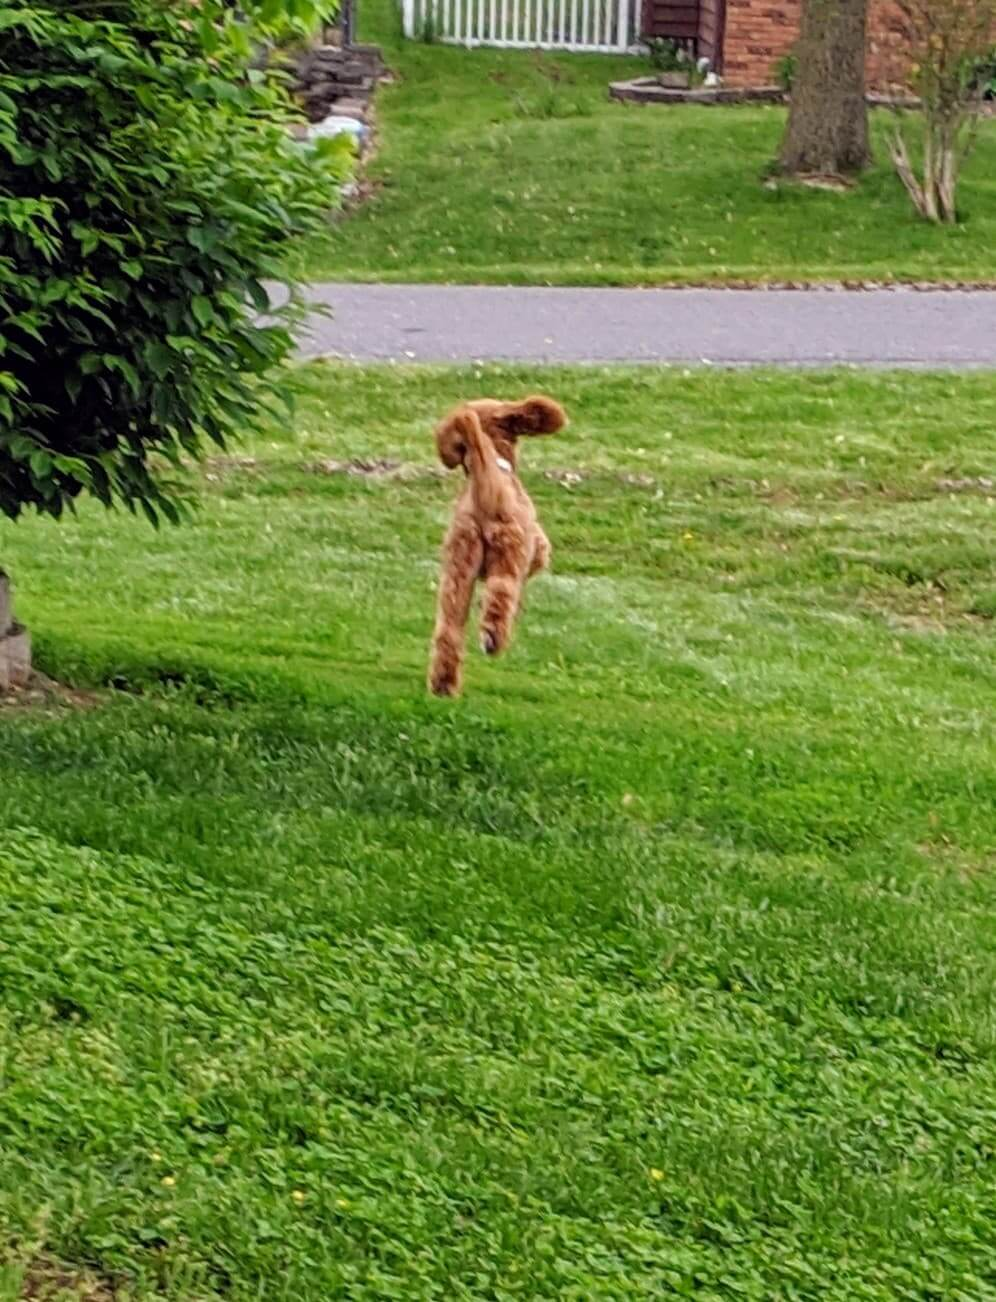 A chestnut colored whoodle jumping through the yard